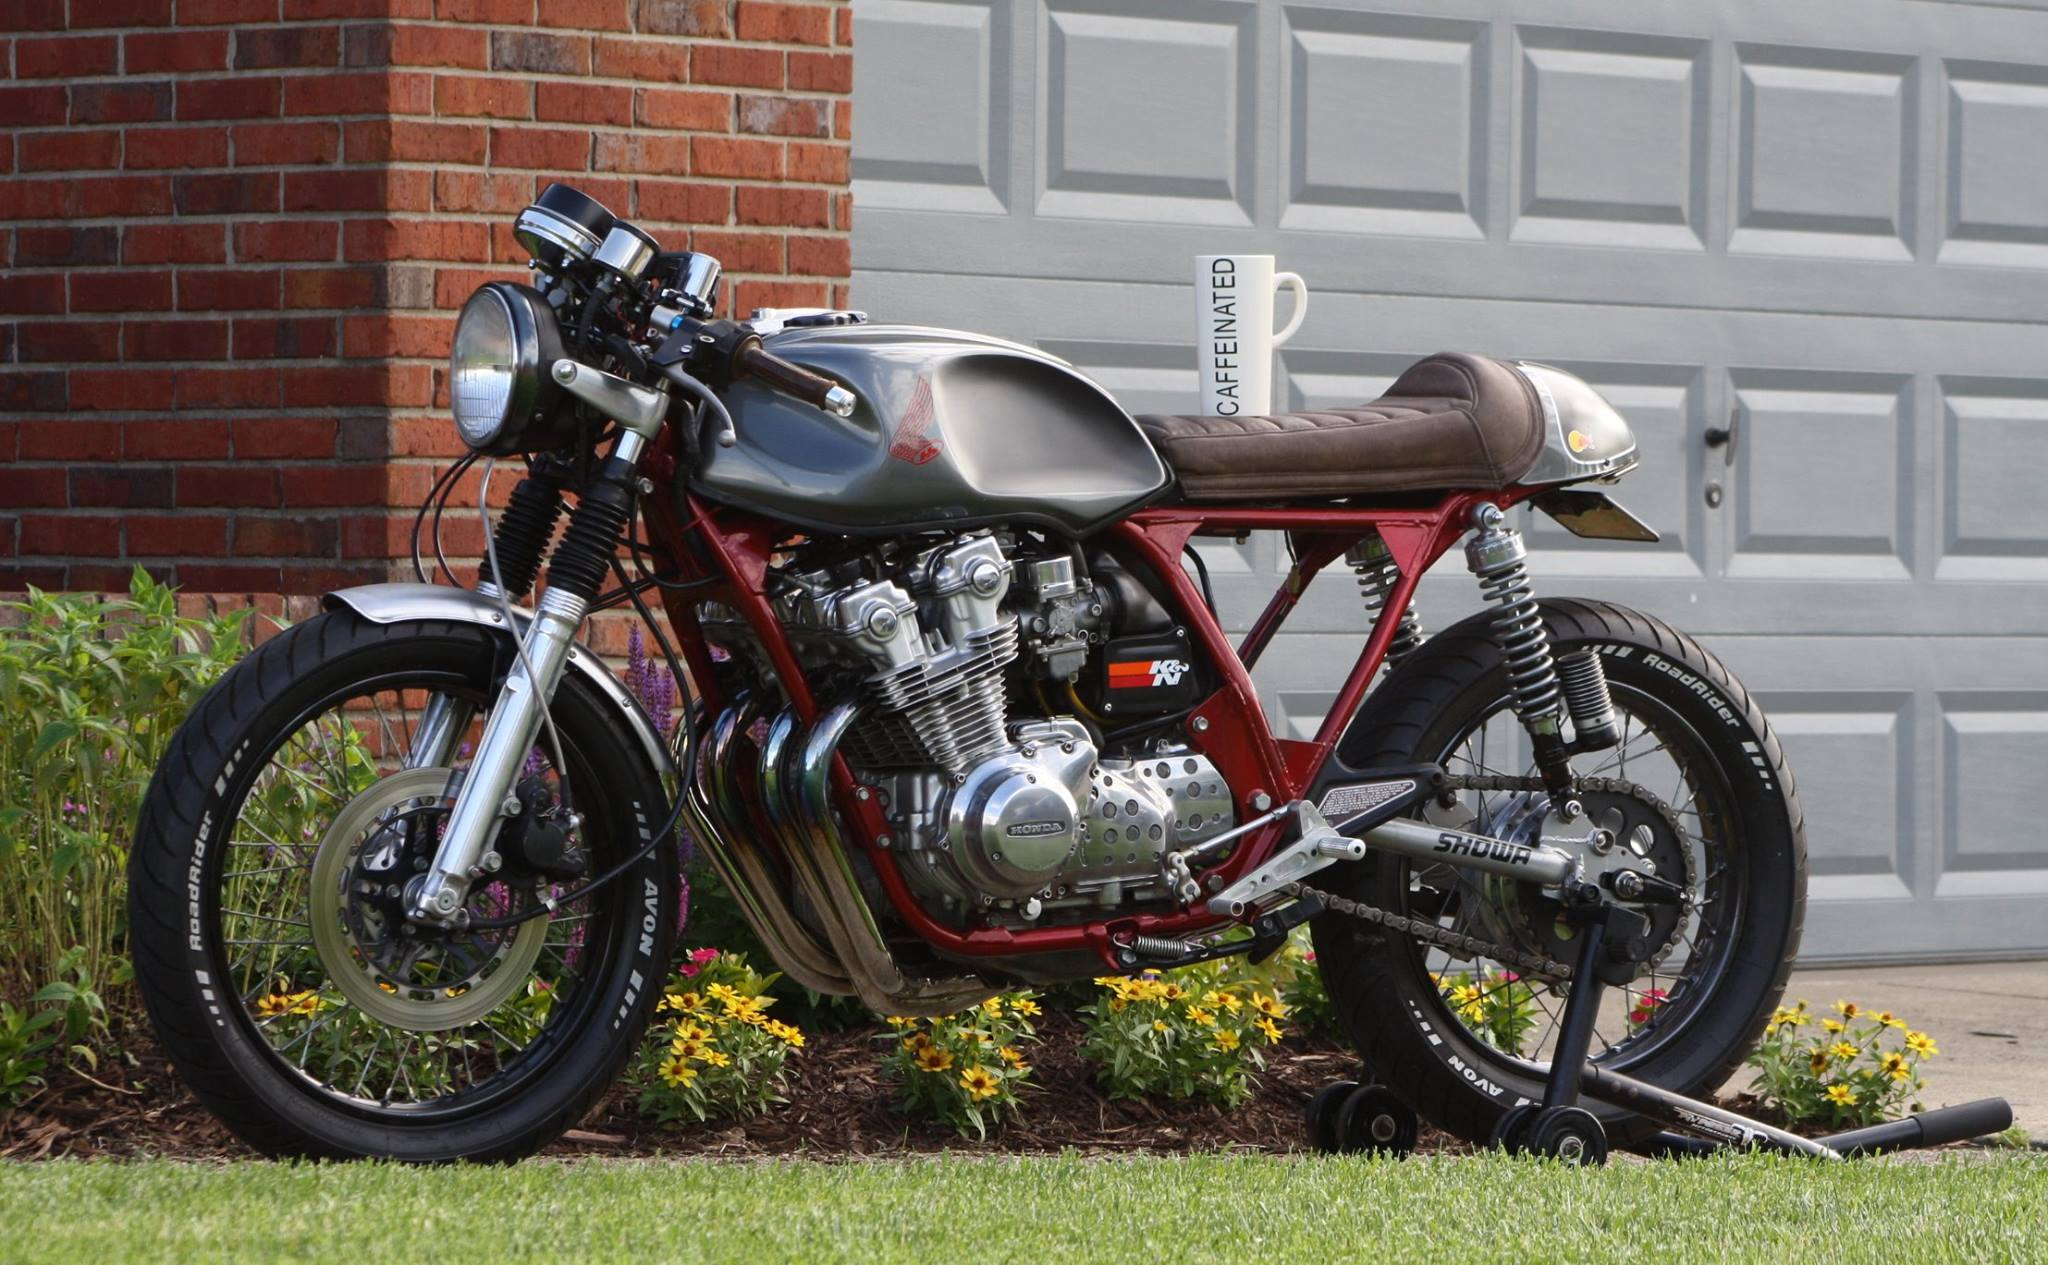 Extrêmement Garage-Built Honda CB750K Cafe Racer – BikeBound KK42